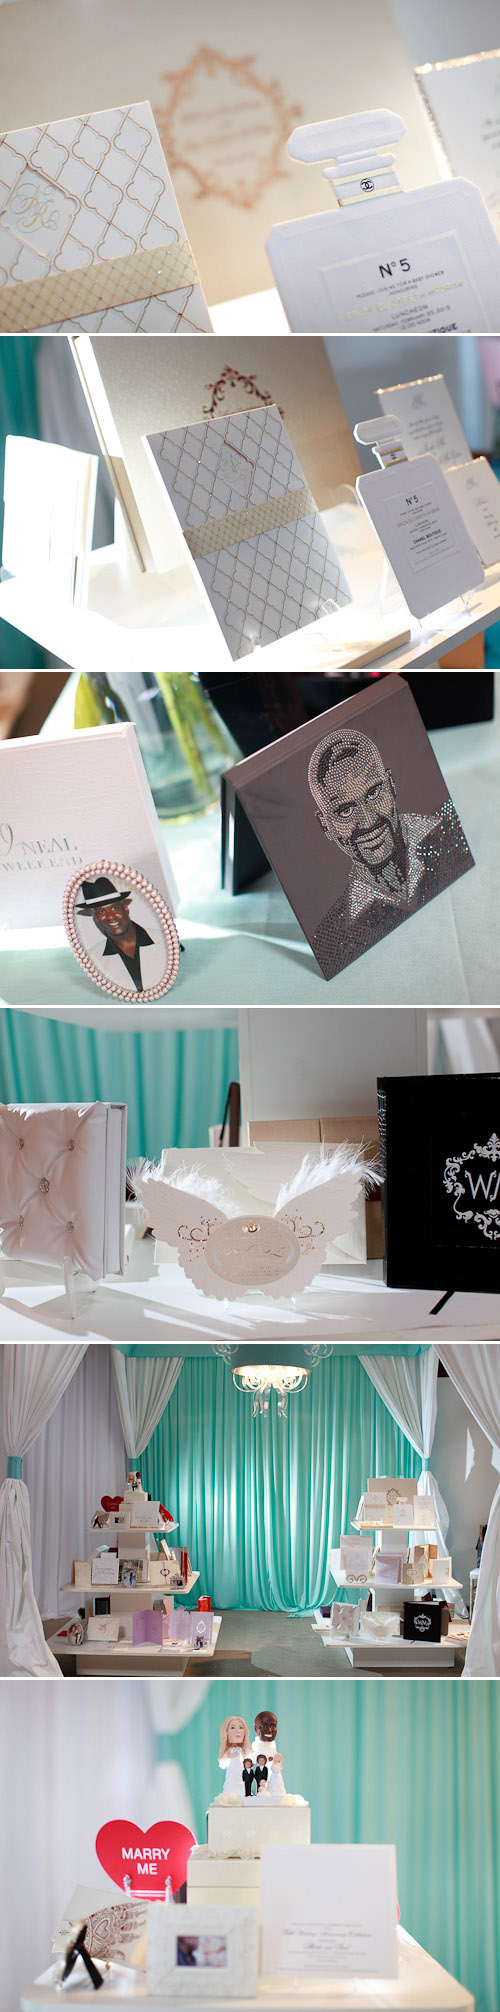 Lehr and Black celebrity wedding invitations at Mindy Weiss' Most Ridiculous Wedding Event Ever 2!